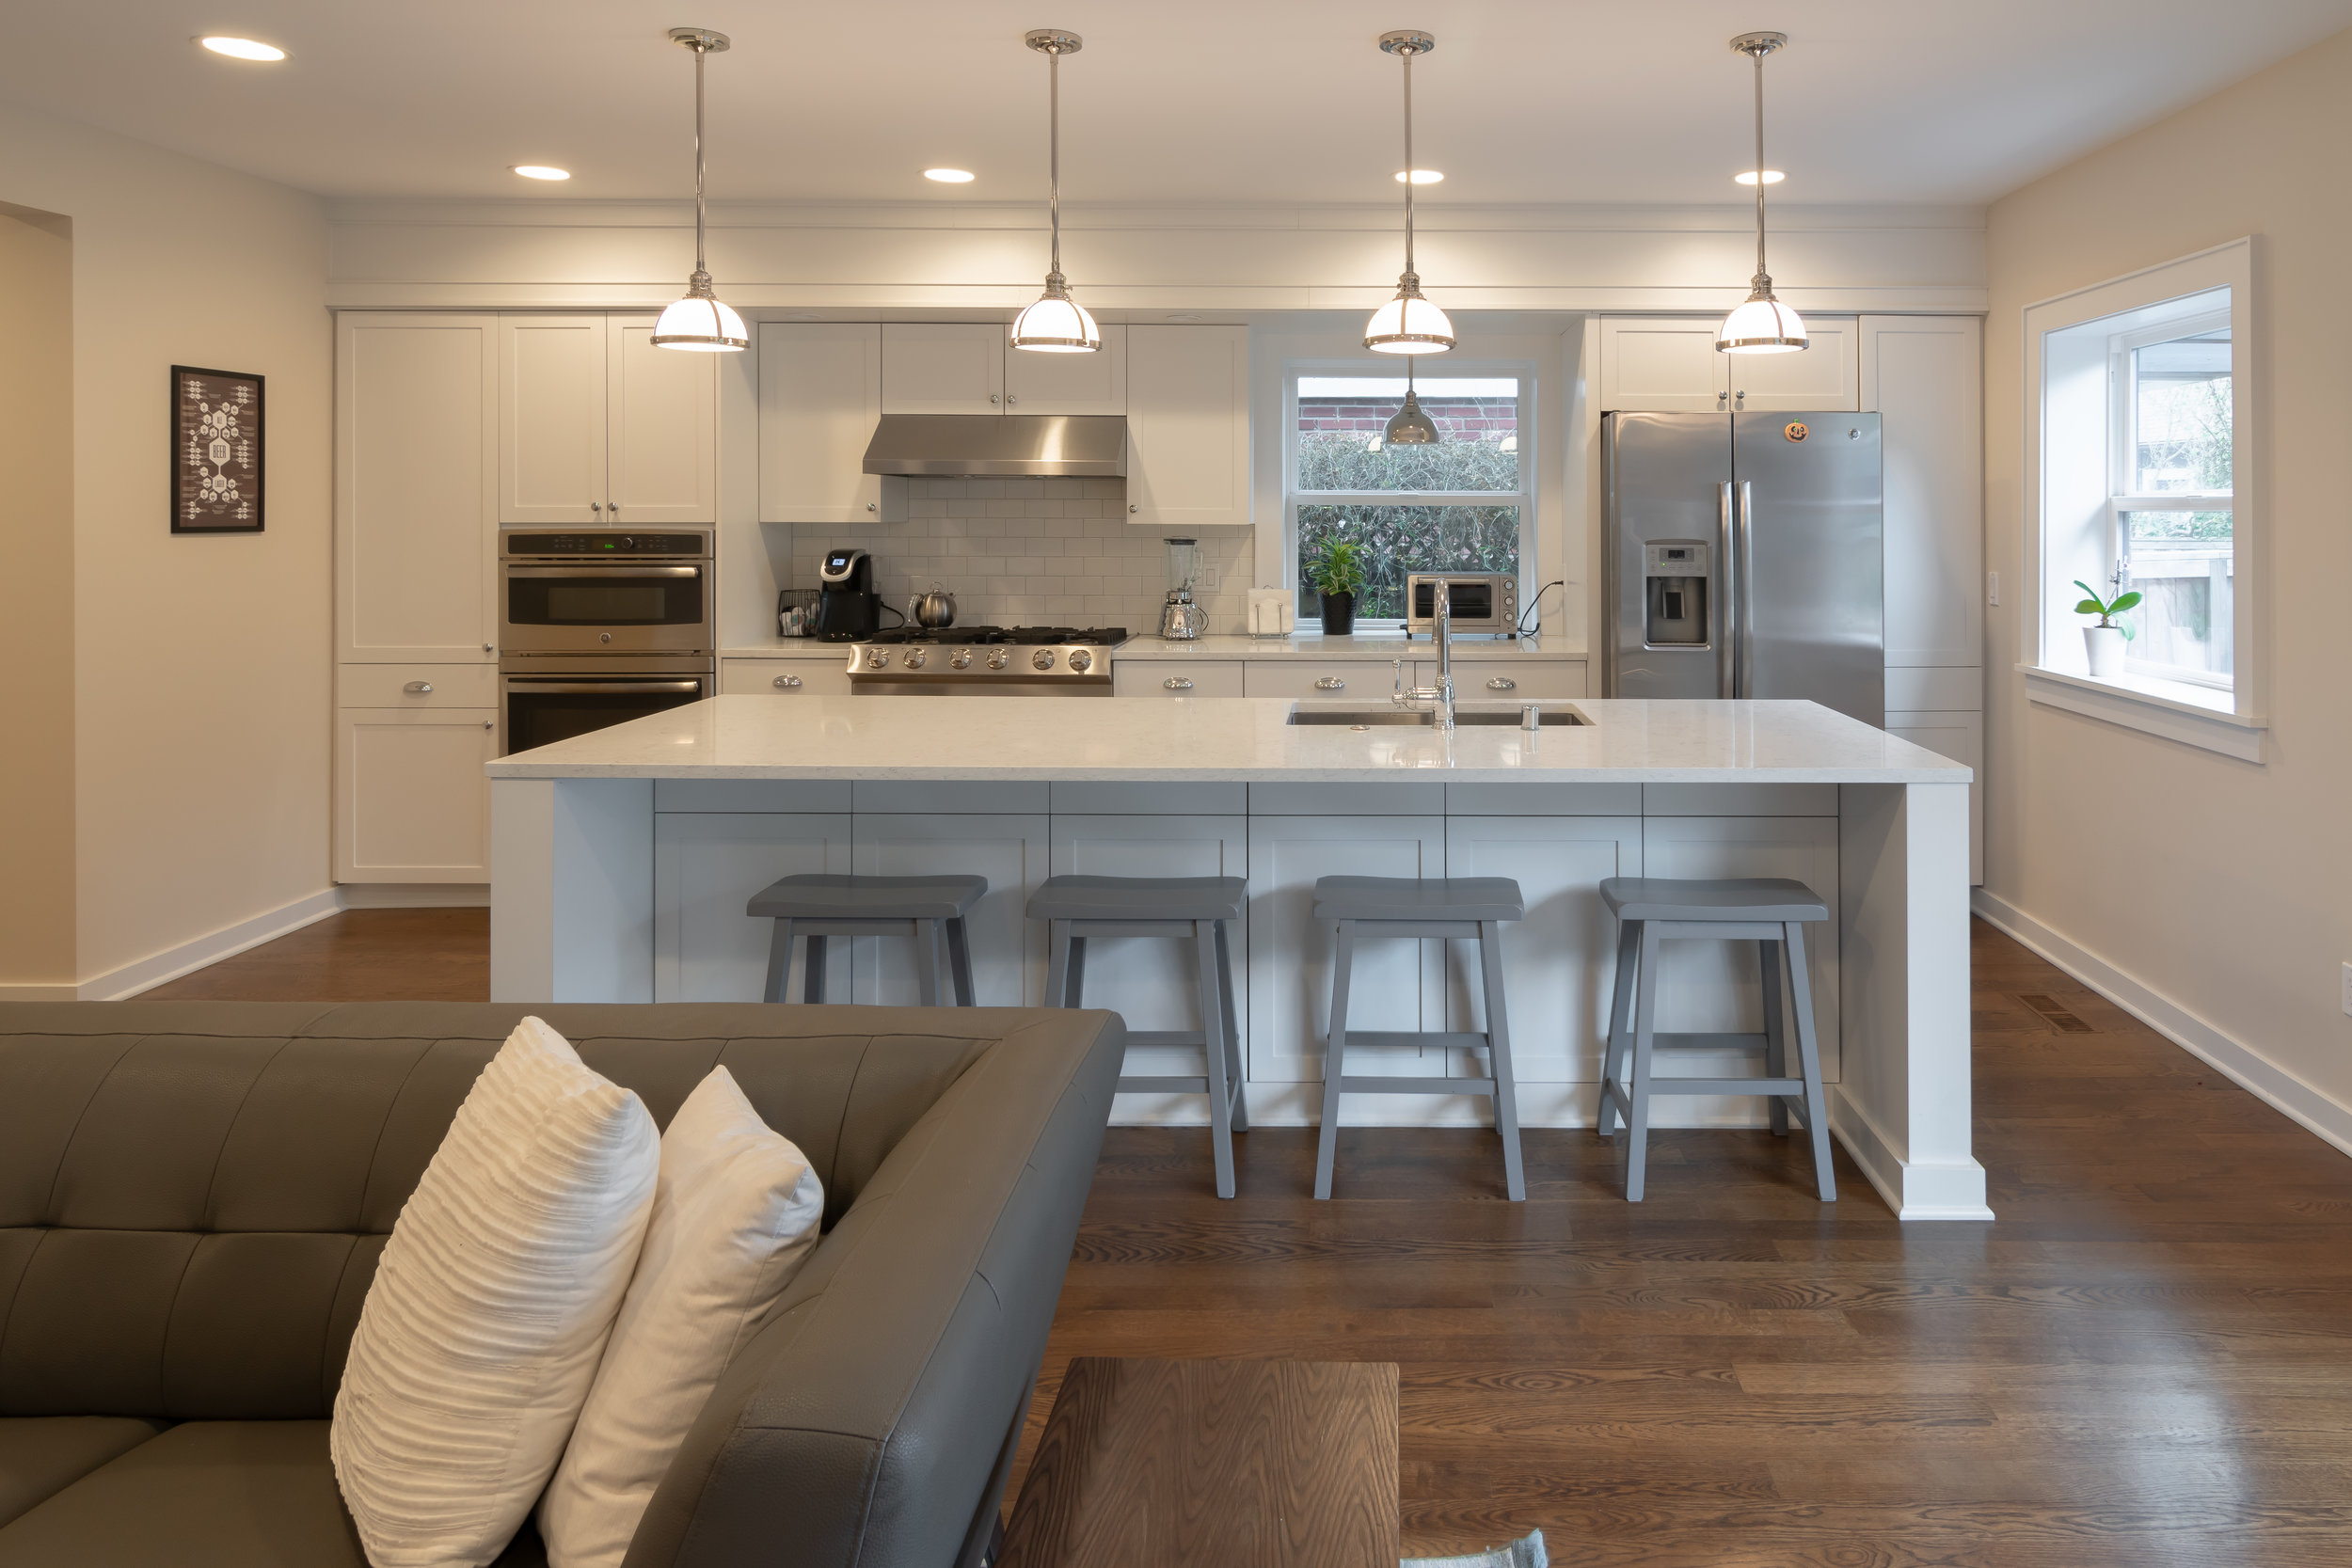 We often integrate the kitchen with the other main living spaces, to allow the family to stay connected while in the different communal spaces on the main floor of the house.